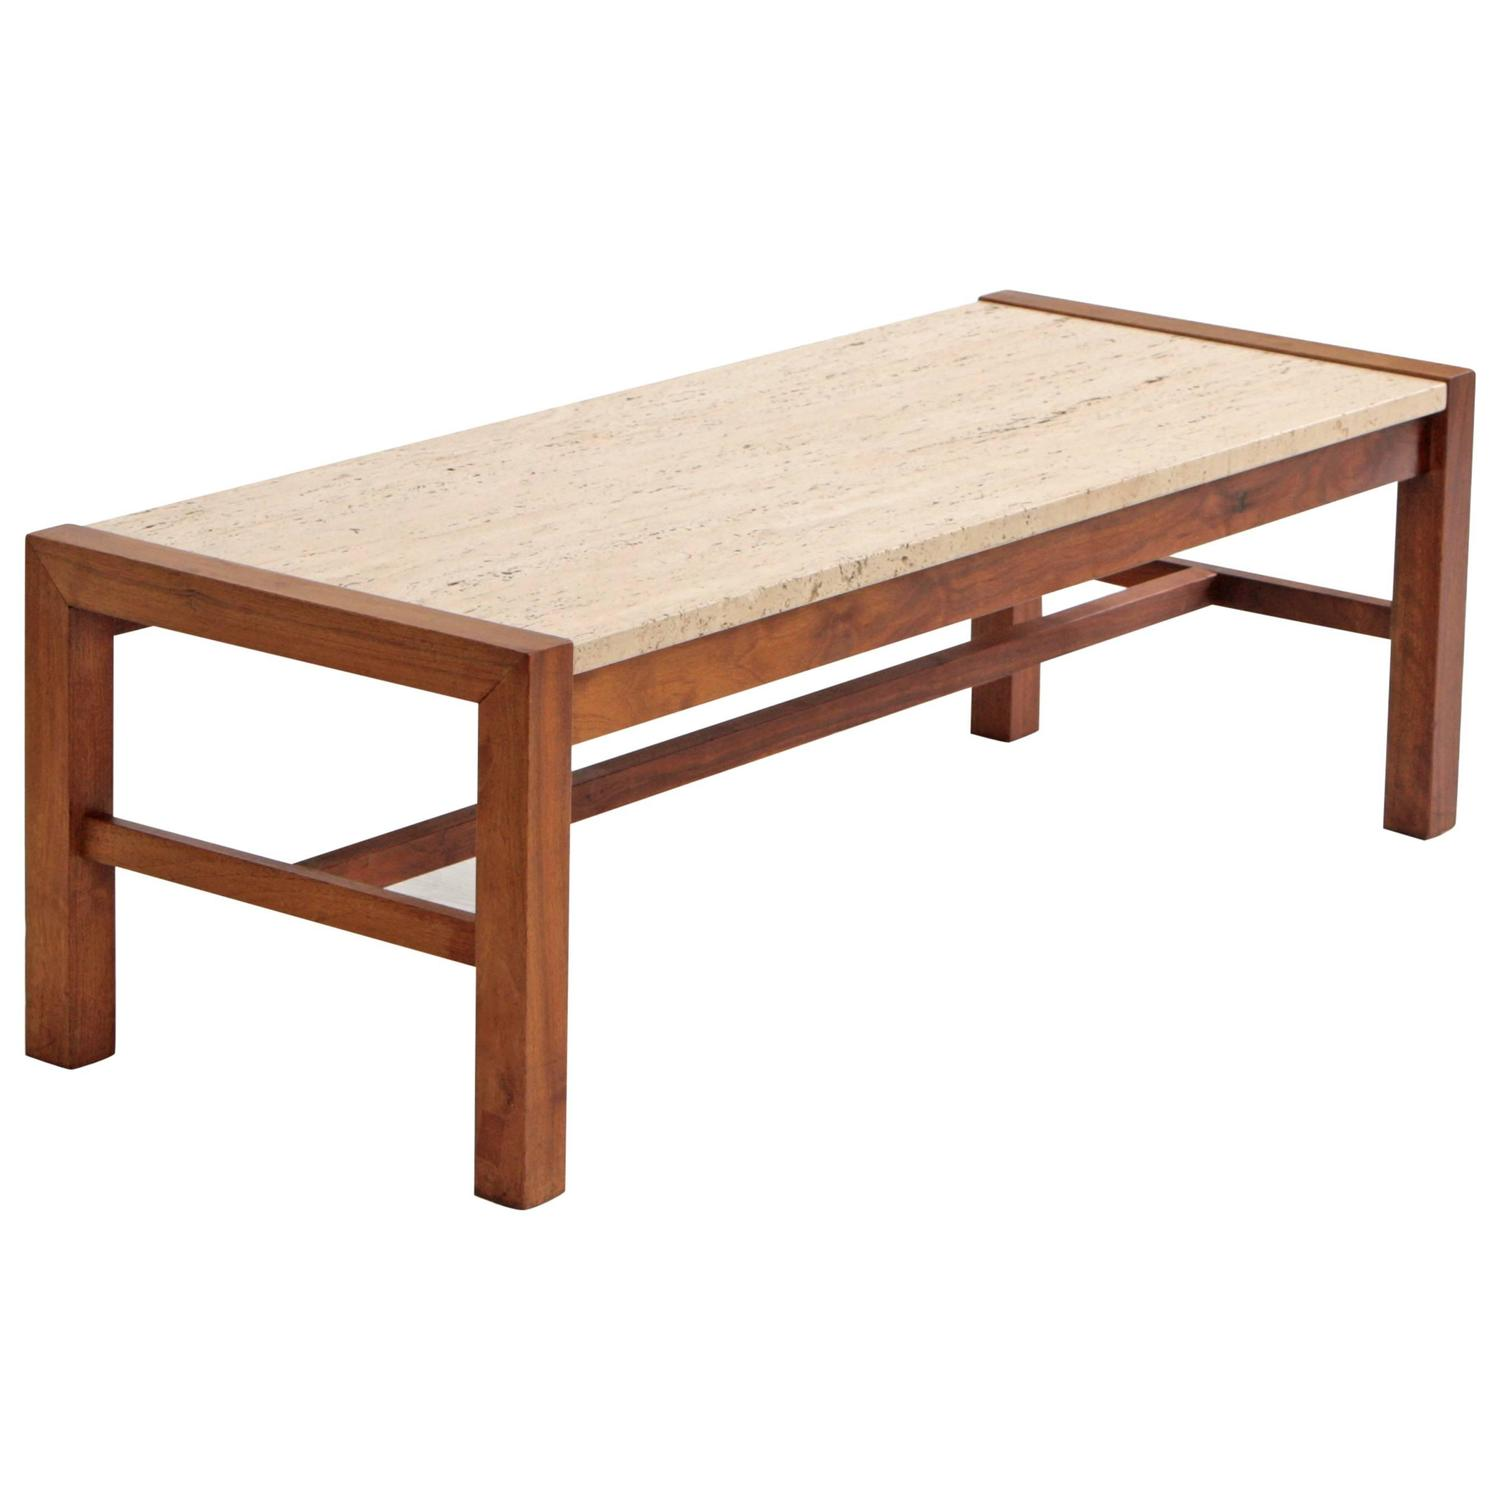 Travertine And Walnut Midcentury Coffee Table At 1stdibs